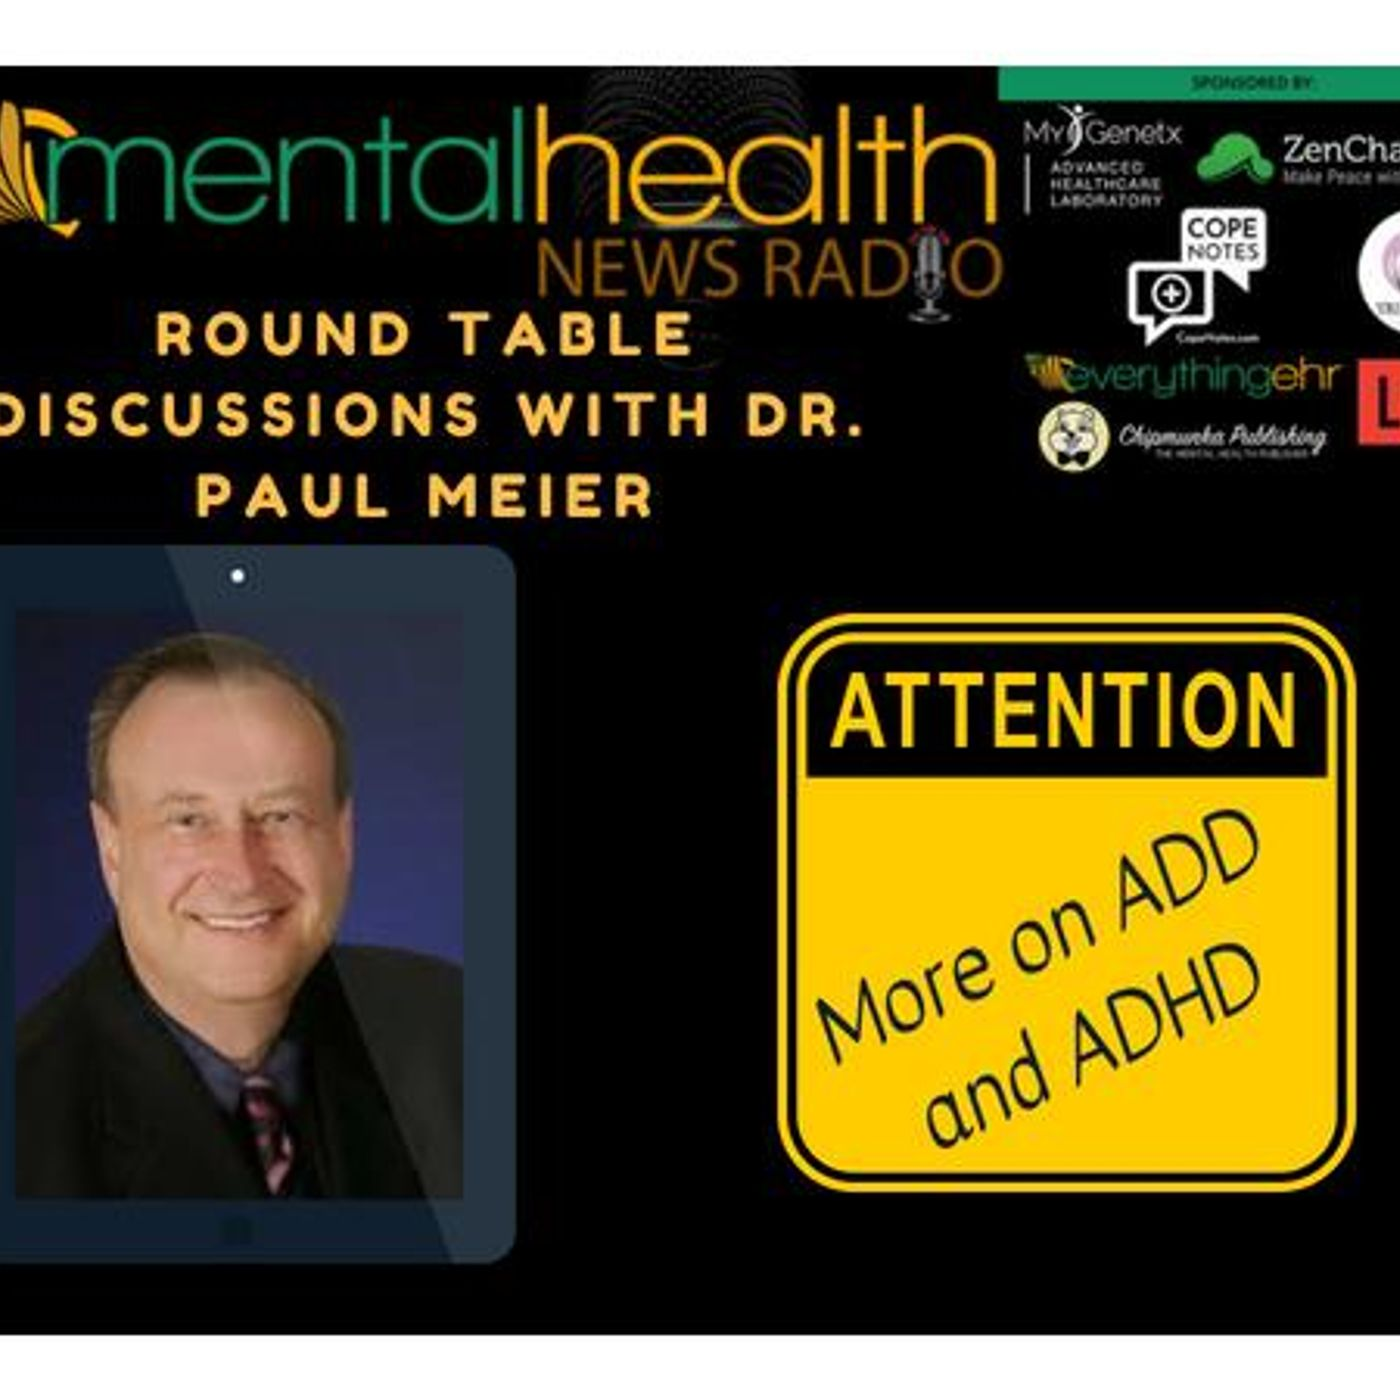 Mental Health News Radio - Round Table Discussions with Dr. Paul Meier: More on ADD and ADHD